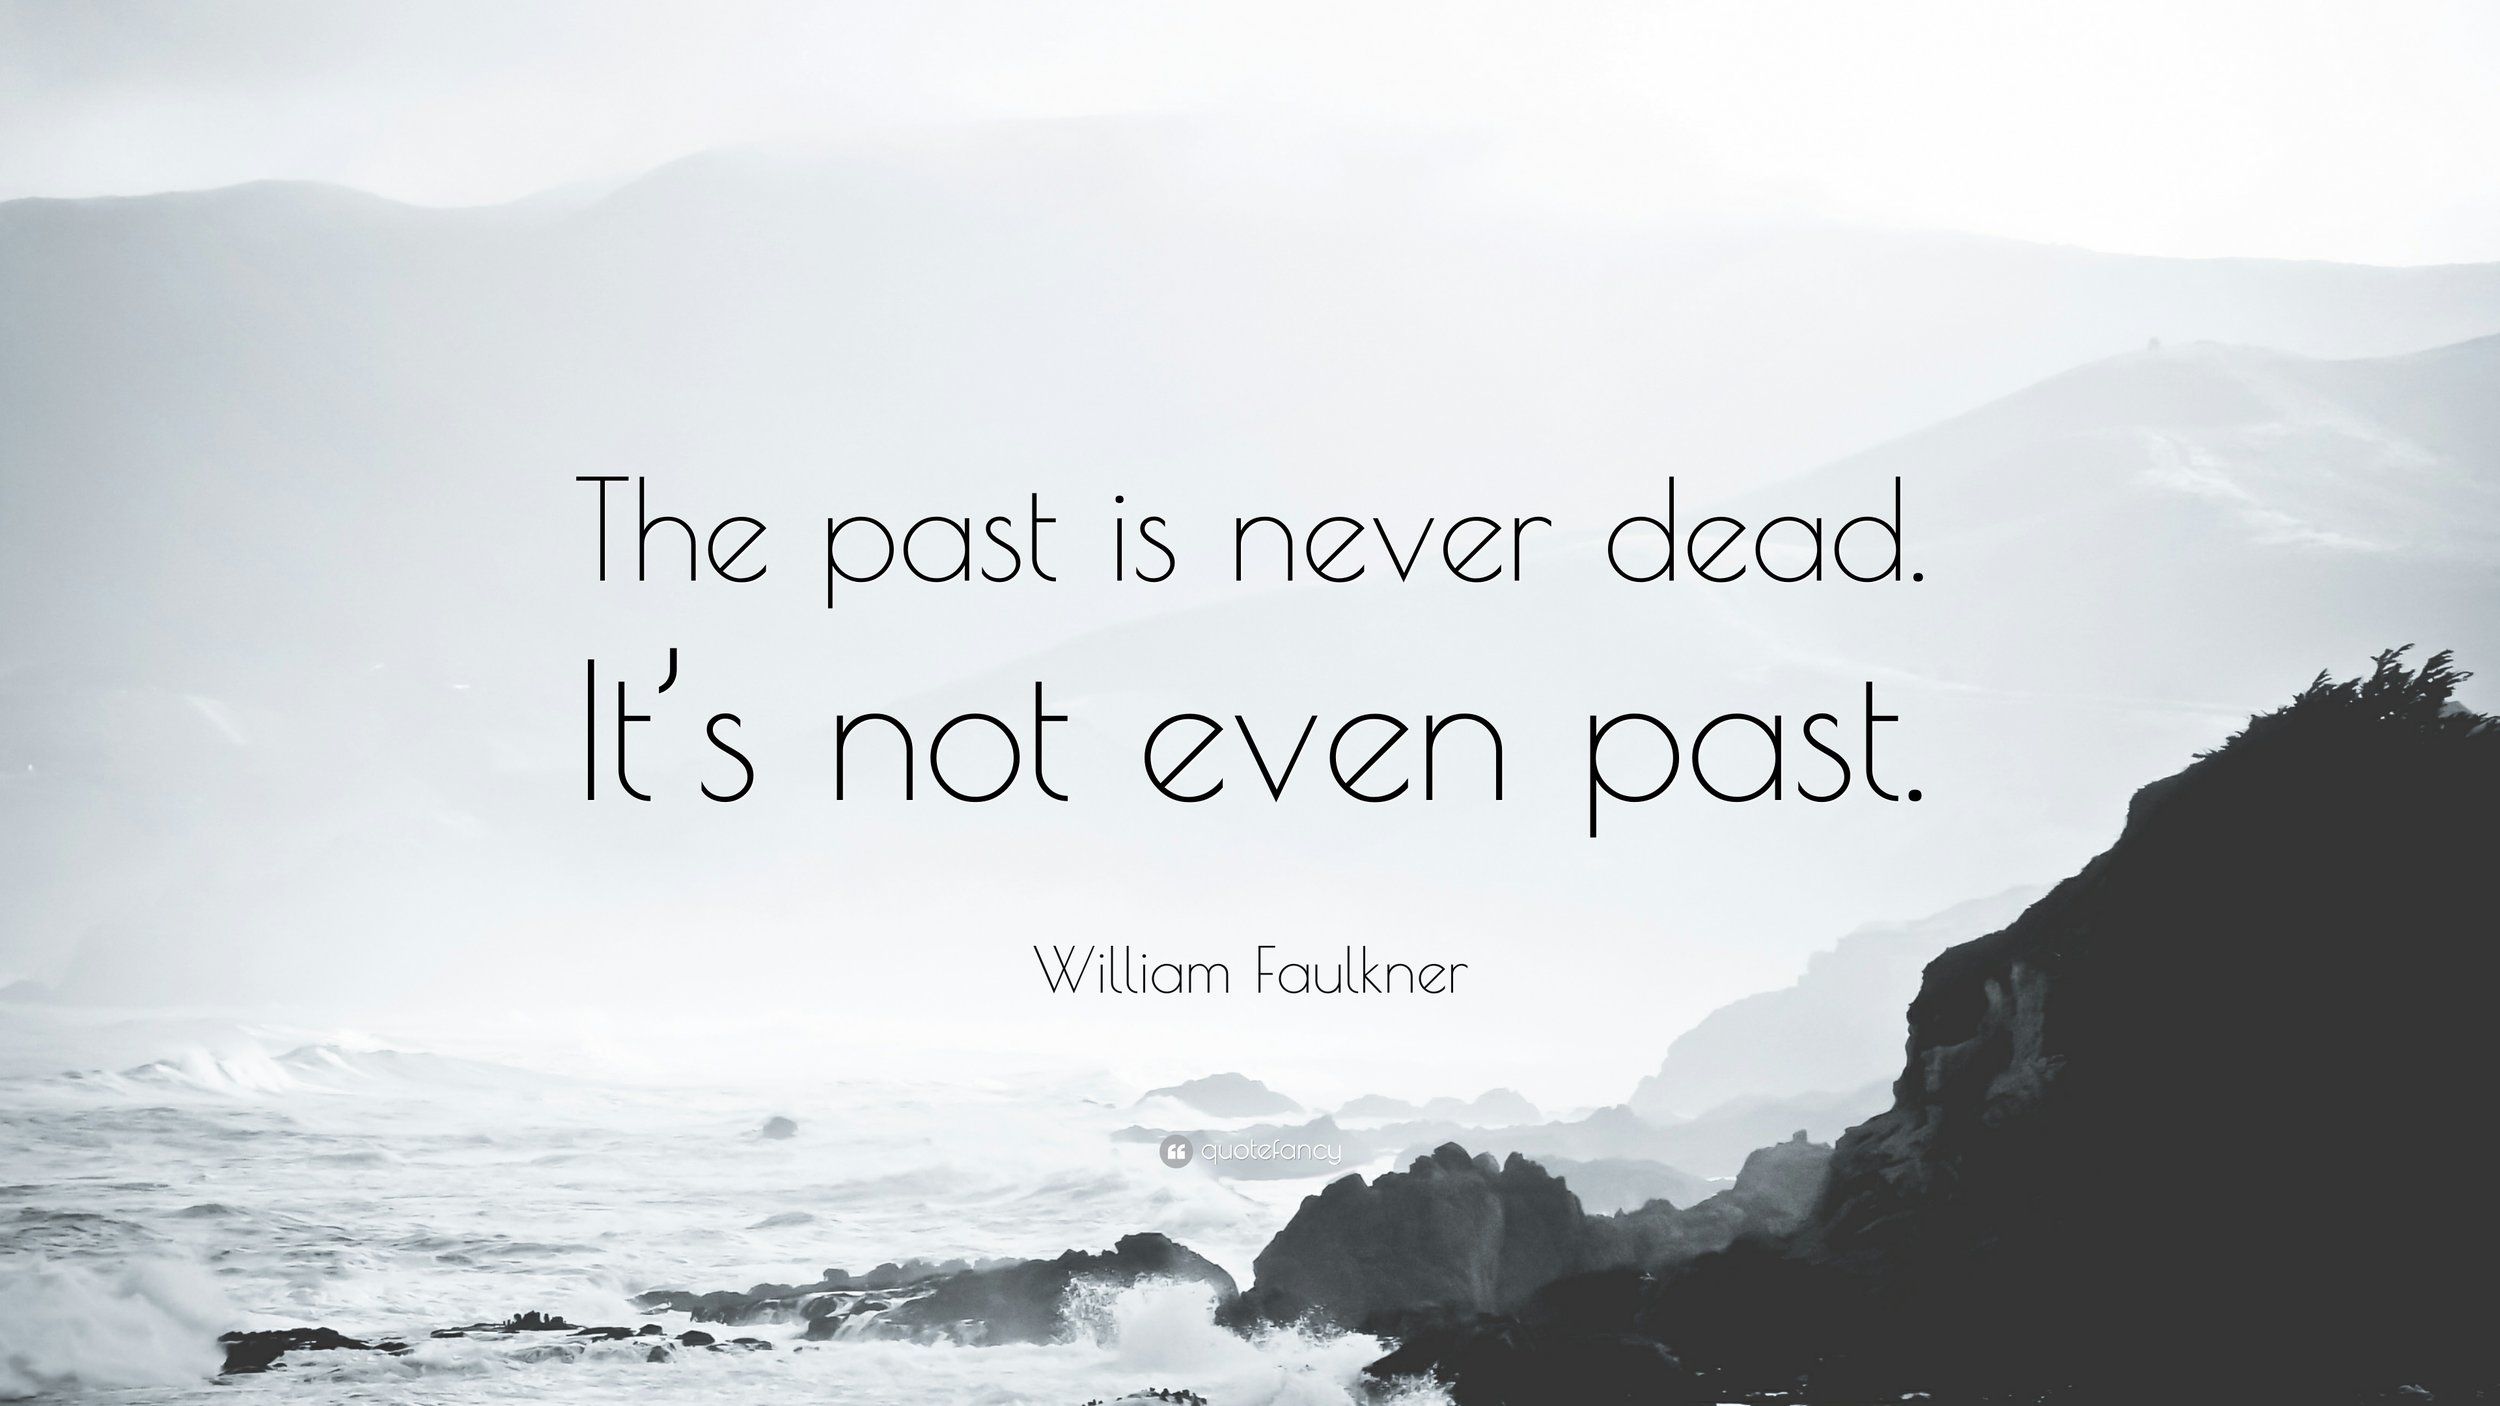 1755249-William-Faulkner-Quote-The-past-is-never-dead-It-s-not-even-past.jpg